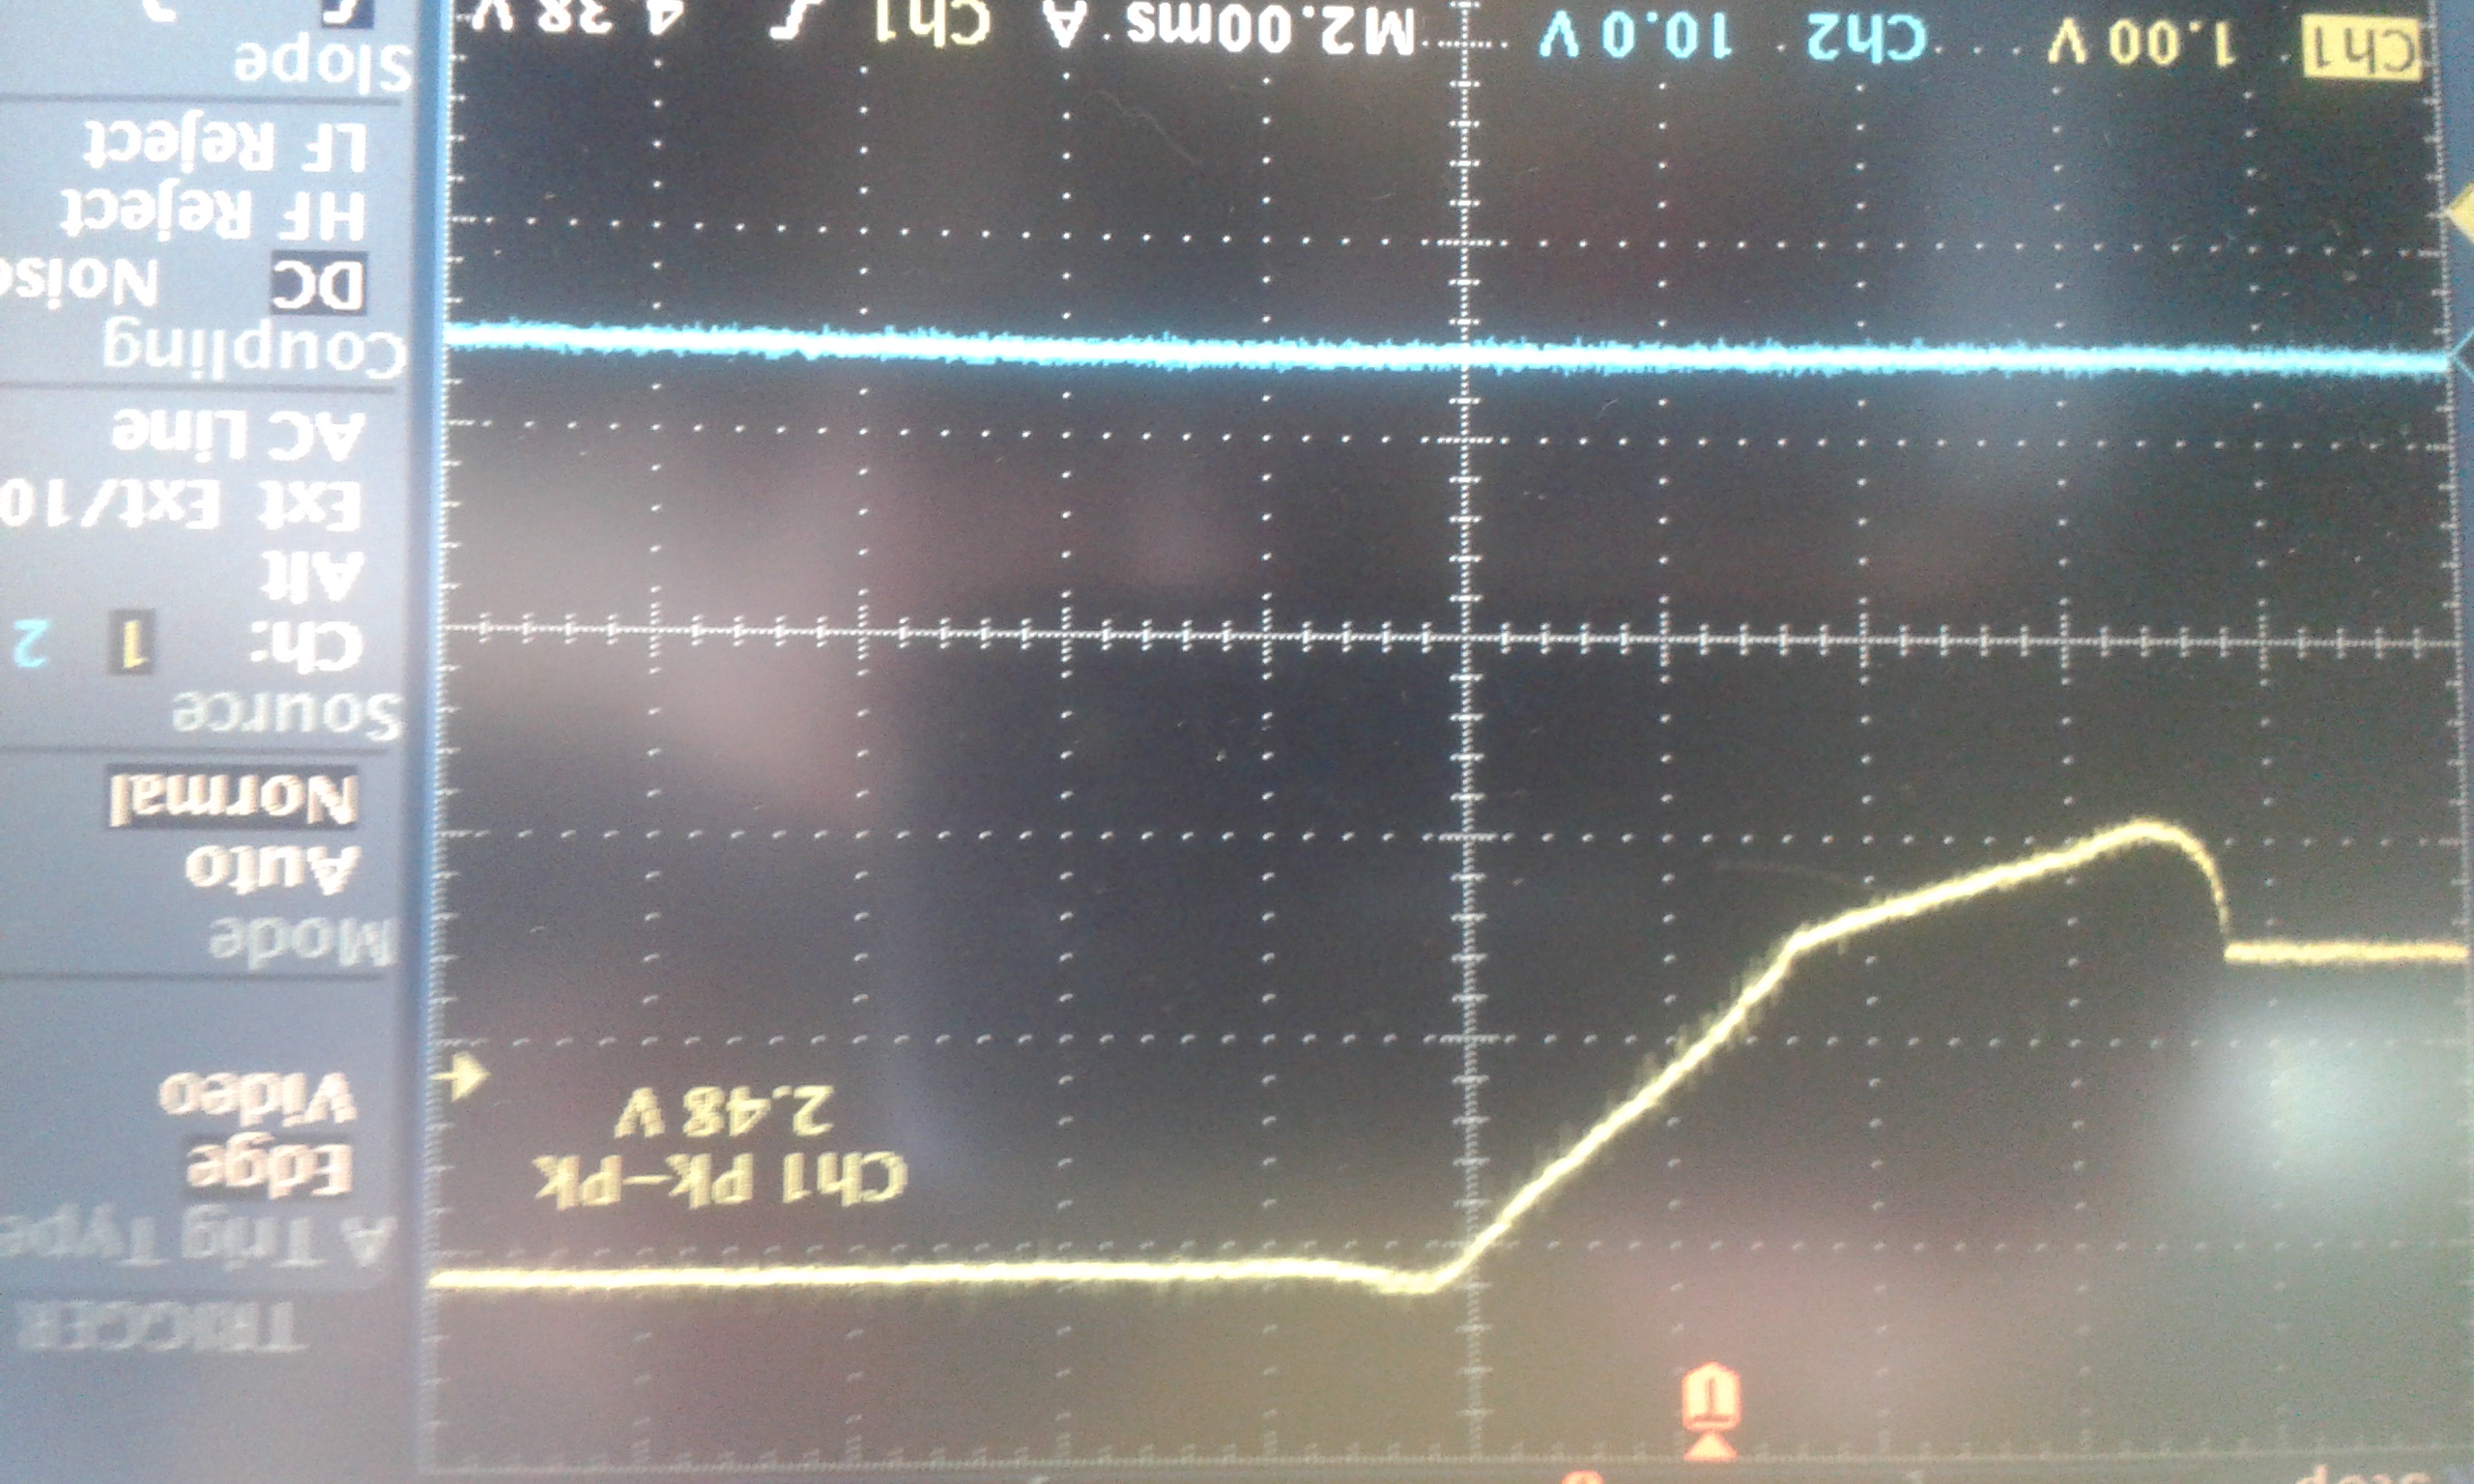 Tps6123x Burn Power Management Forum Ti E2e Supply Non Isolated Dc Vin Current Coil Is Difficult To Measure So I Made Measured Voltage Droop On Track From Accu Chip